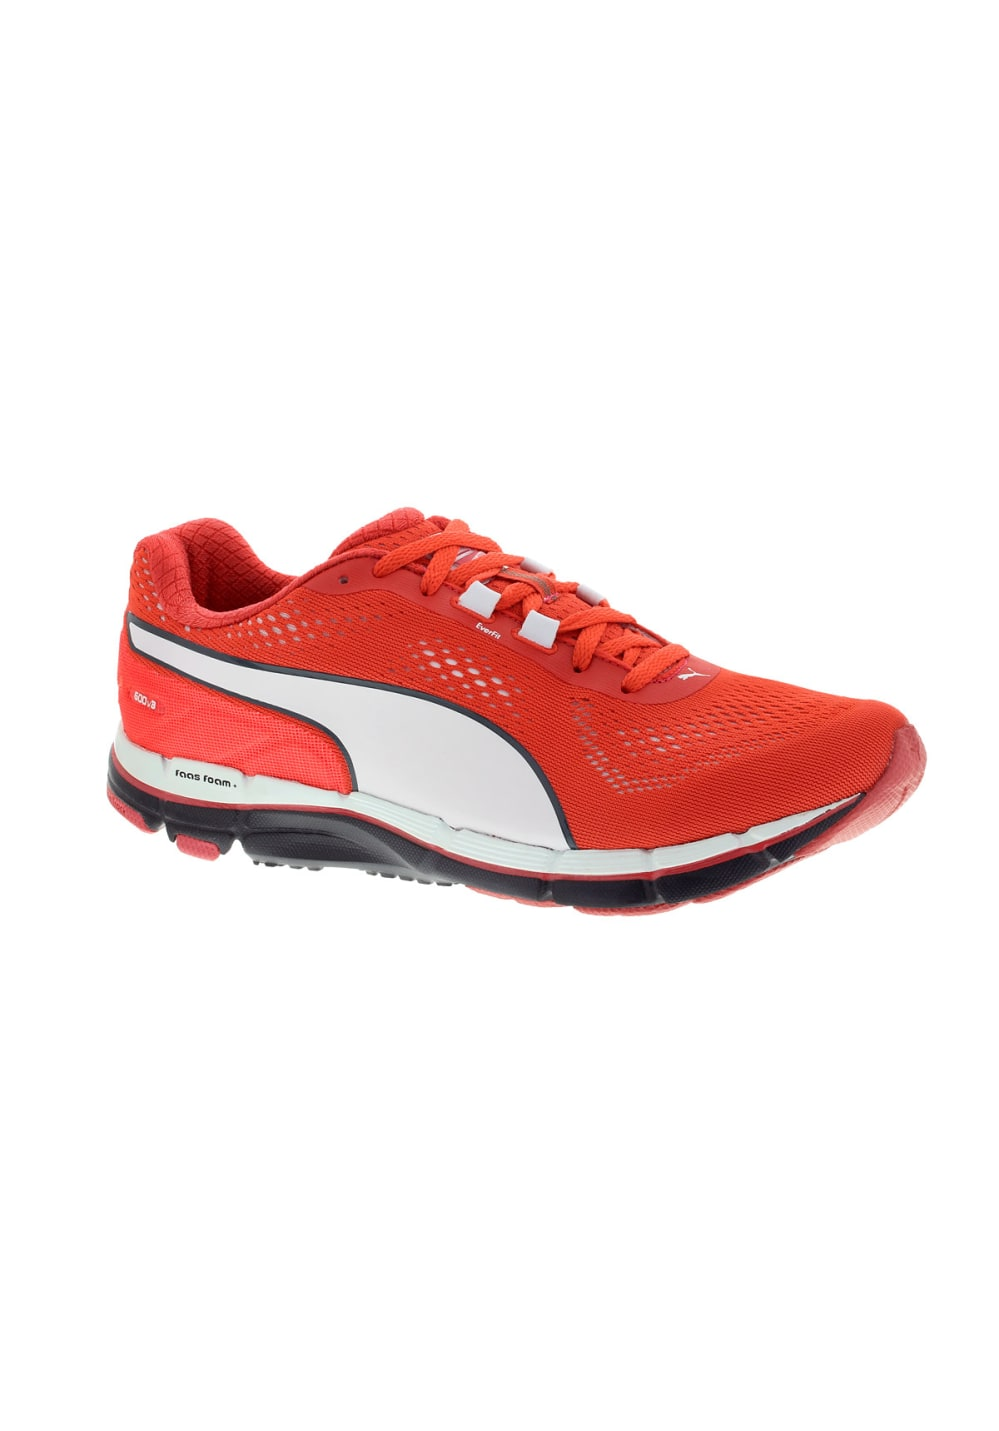 Puma Faas 600 v3 Chaussures running pour Femme Rouge